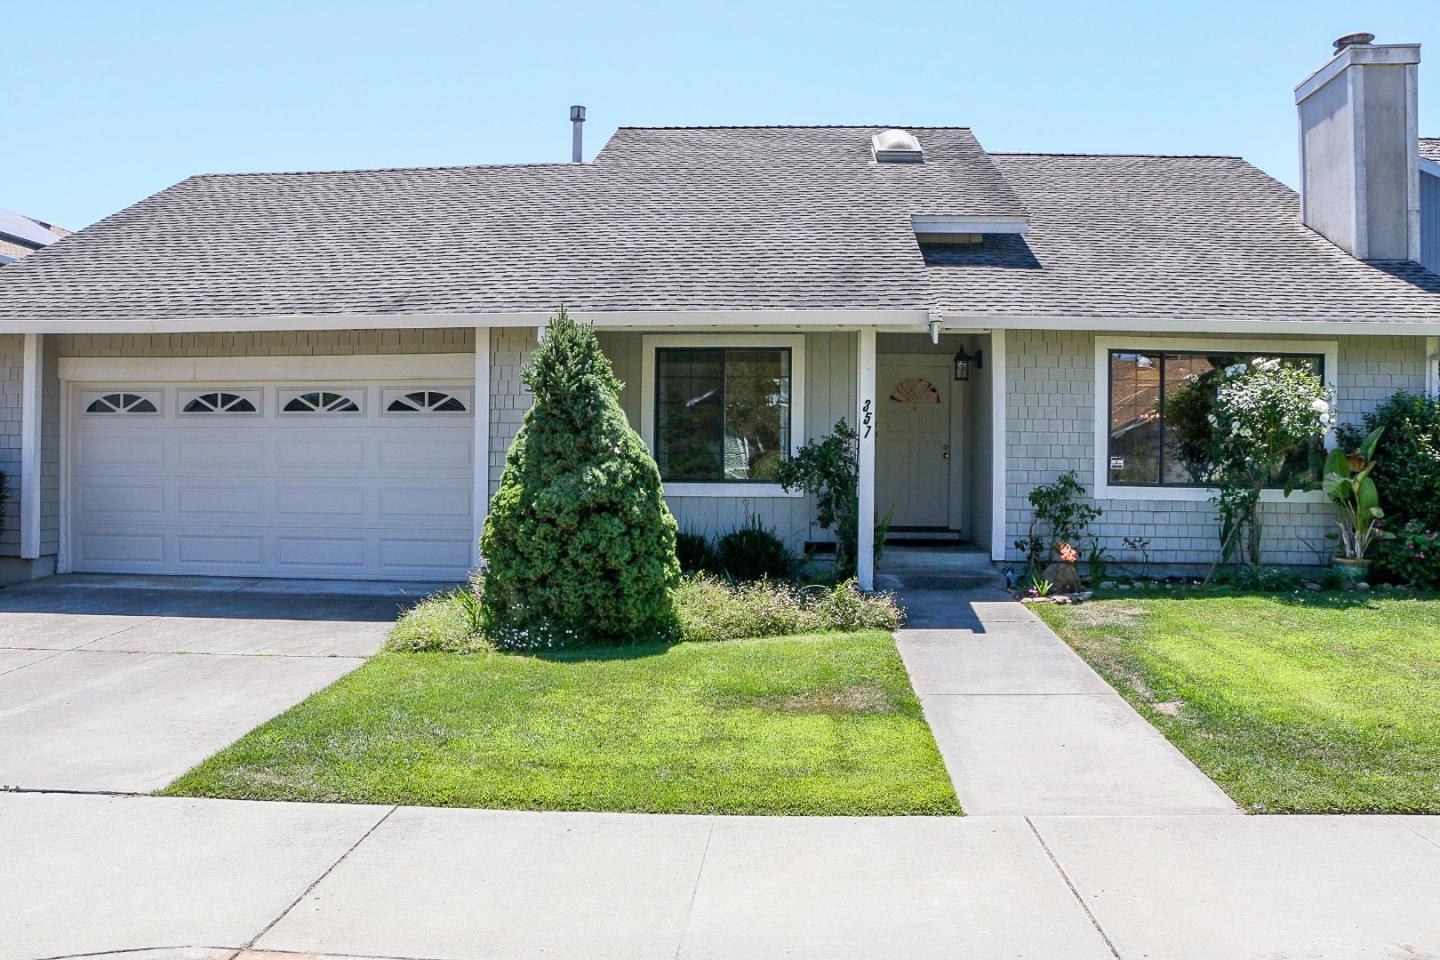 Single Family Home for Sale at 357 Arbol Drive Watsonville, California 95076 United States